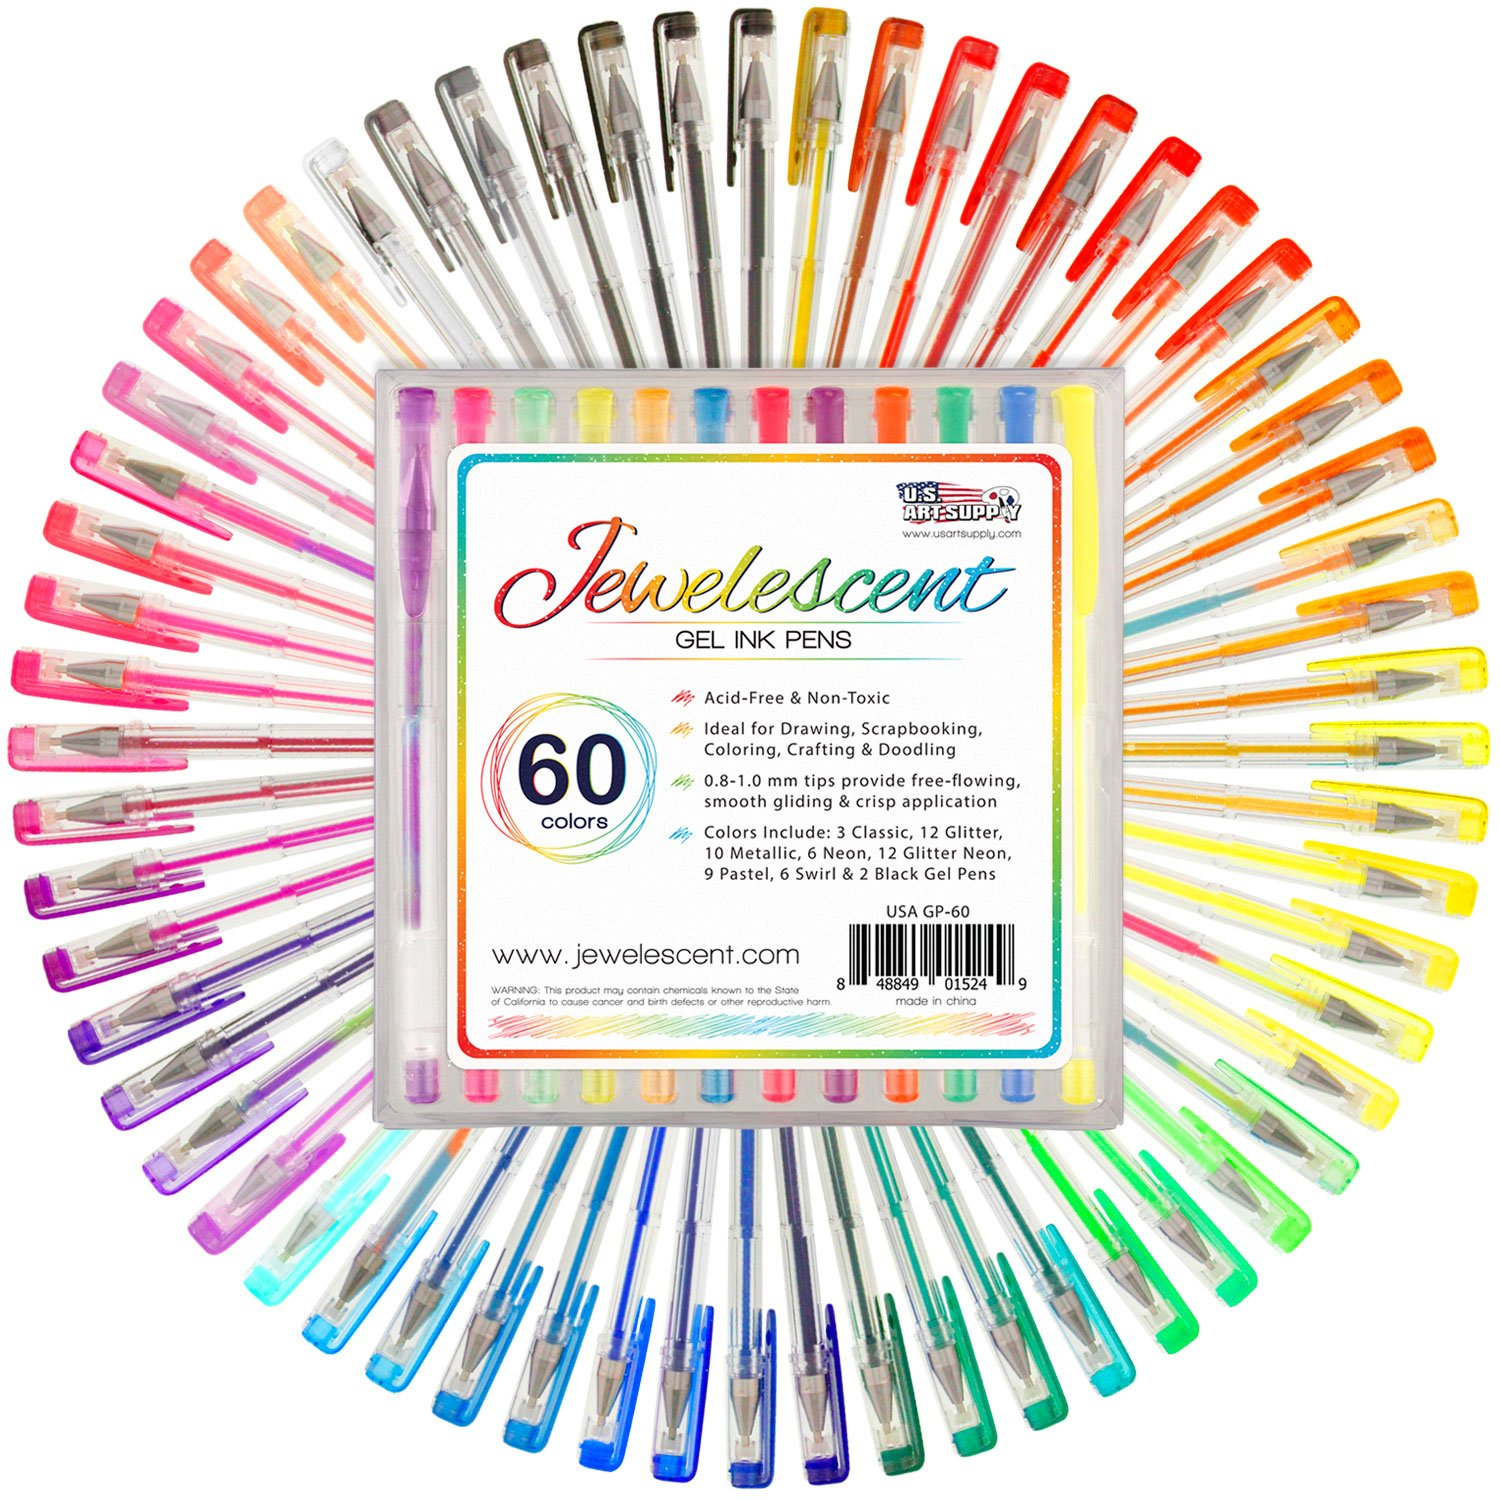 US Art Supply® Jewelescent® 60 Color Gel Pen Set - Professional Artist Quality S Gel Ink Pens in Vibrant Colors - Classic, Glitter, Metallic, Neon, Pastel & Swirl Colors - 100% Satisfaction Guarantee